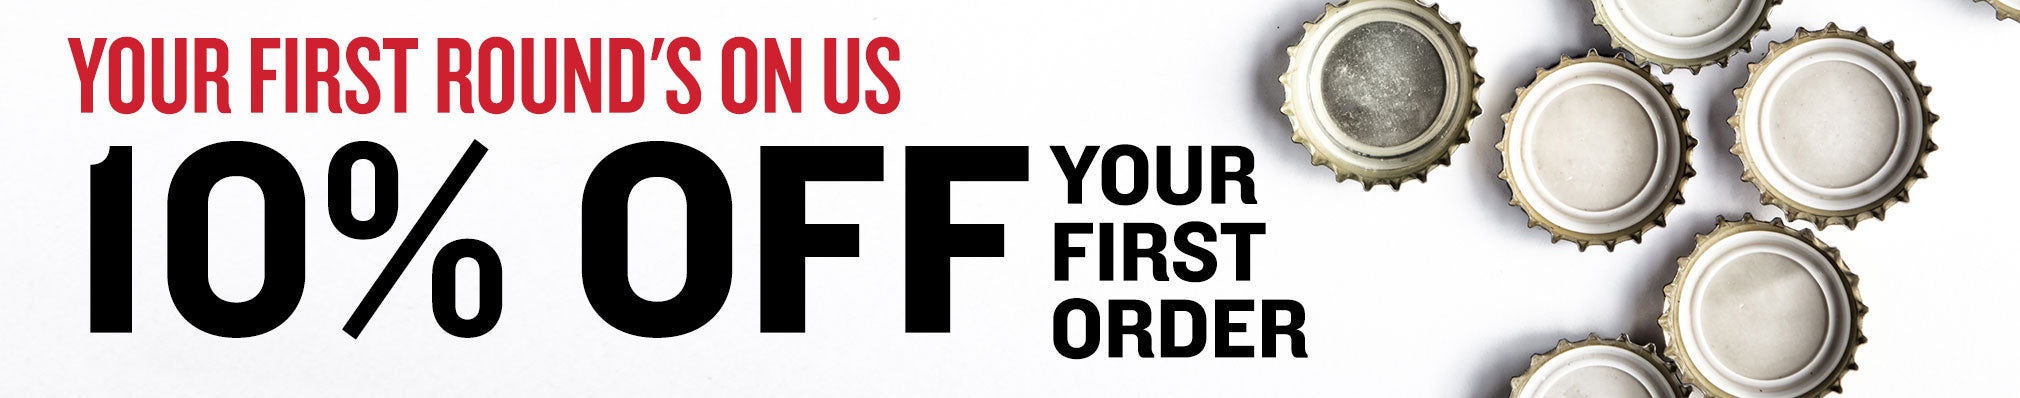 10% Off Your First Order. Email Exclusive Promotion.